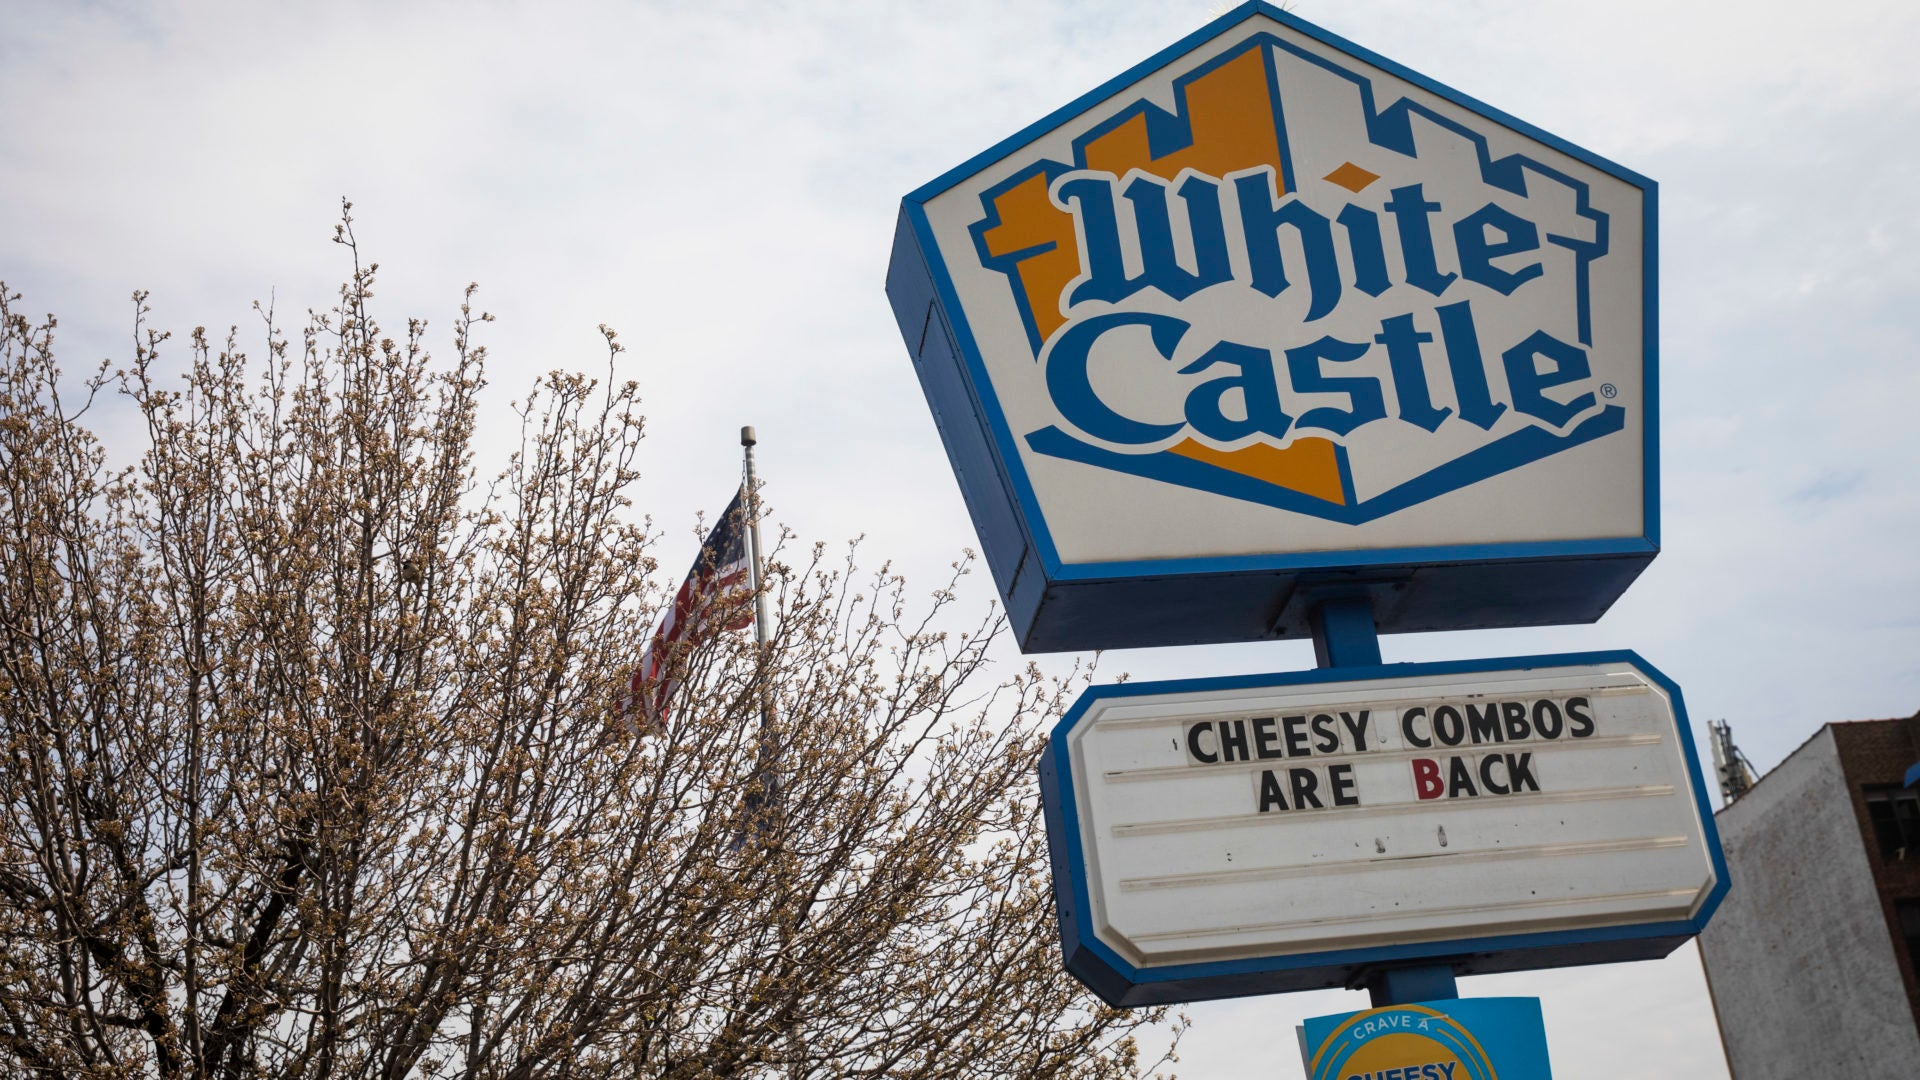 3 Indiana Judges Suspended Without Pay After Fight At White Castle